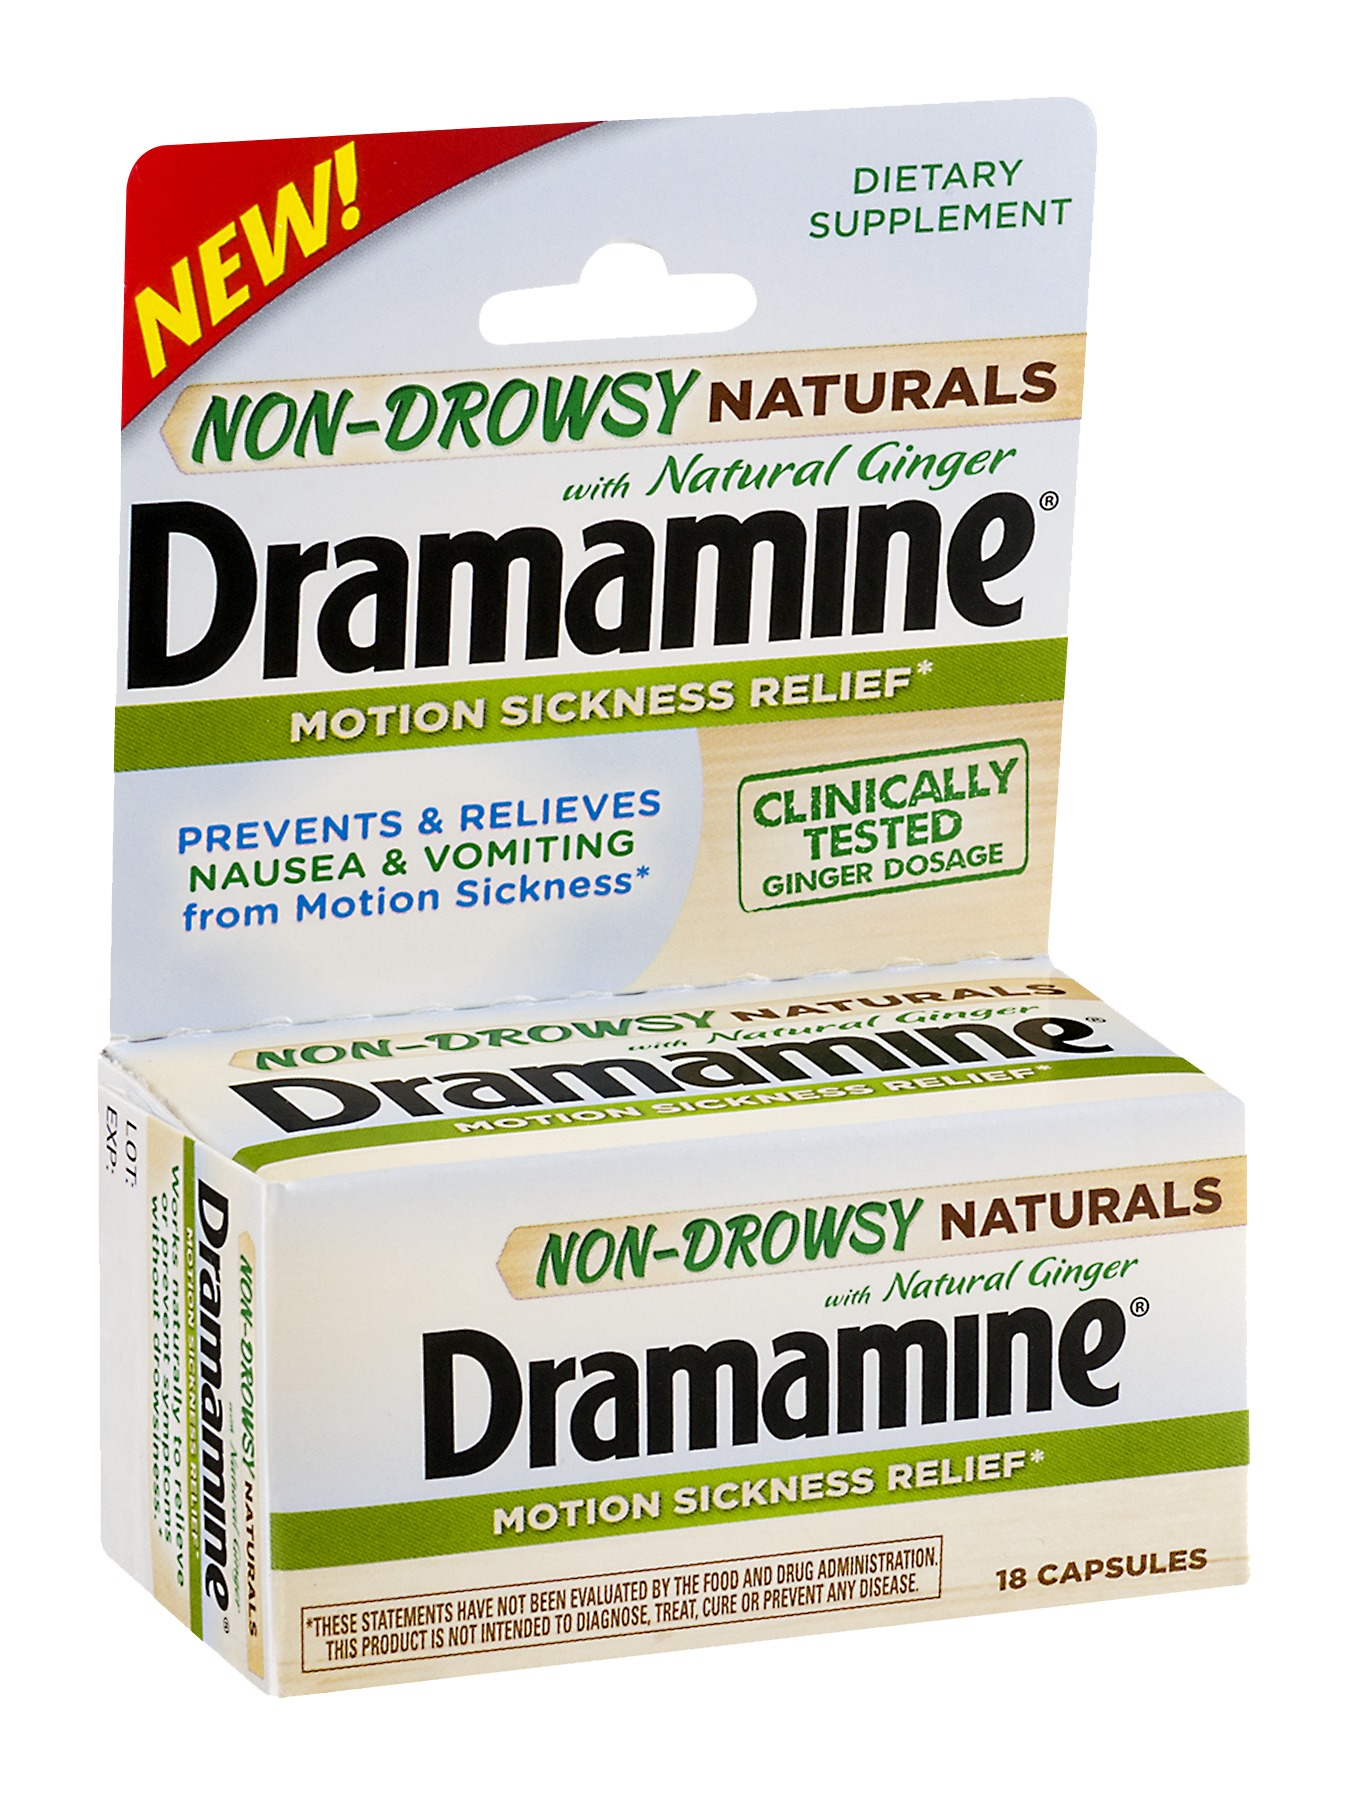 Dramamine 1810GIN Motion Sickness W/ NATURAL GINGER NON DROWSY - 18